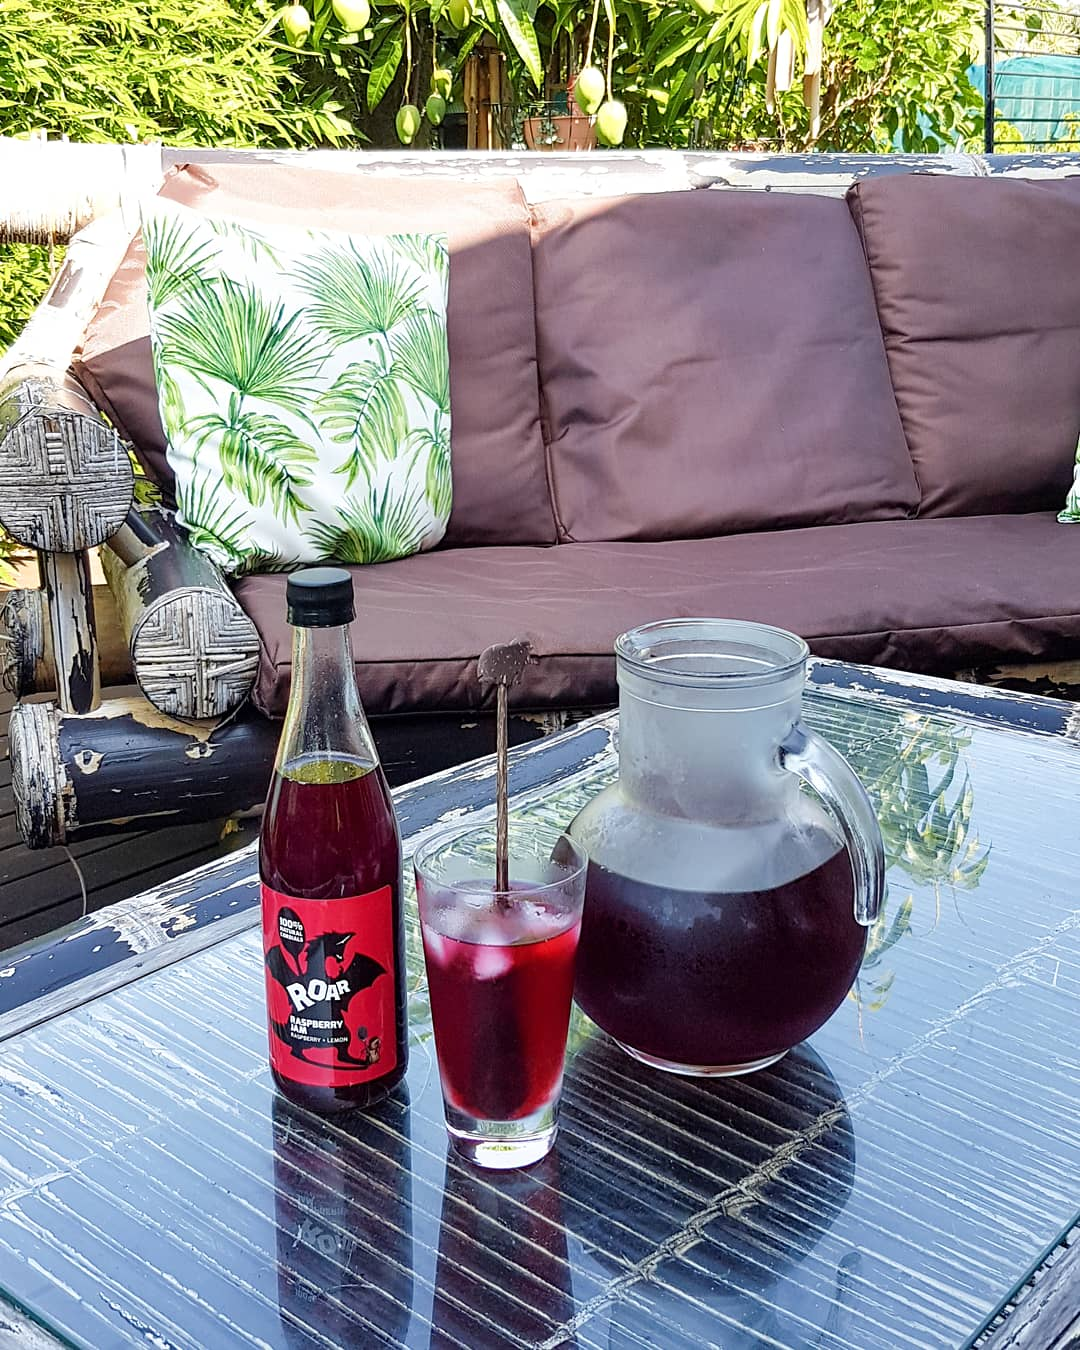 Iced tea recipe. Hibiscus Flower. Floral tea. Roar Living. Raspberry cordial. Natural cordials. Australian raspberry cordial. Summer drink